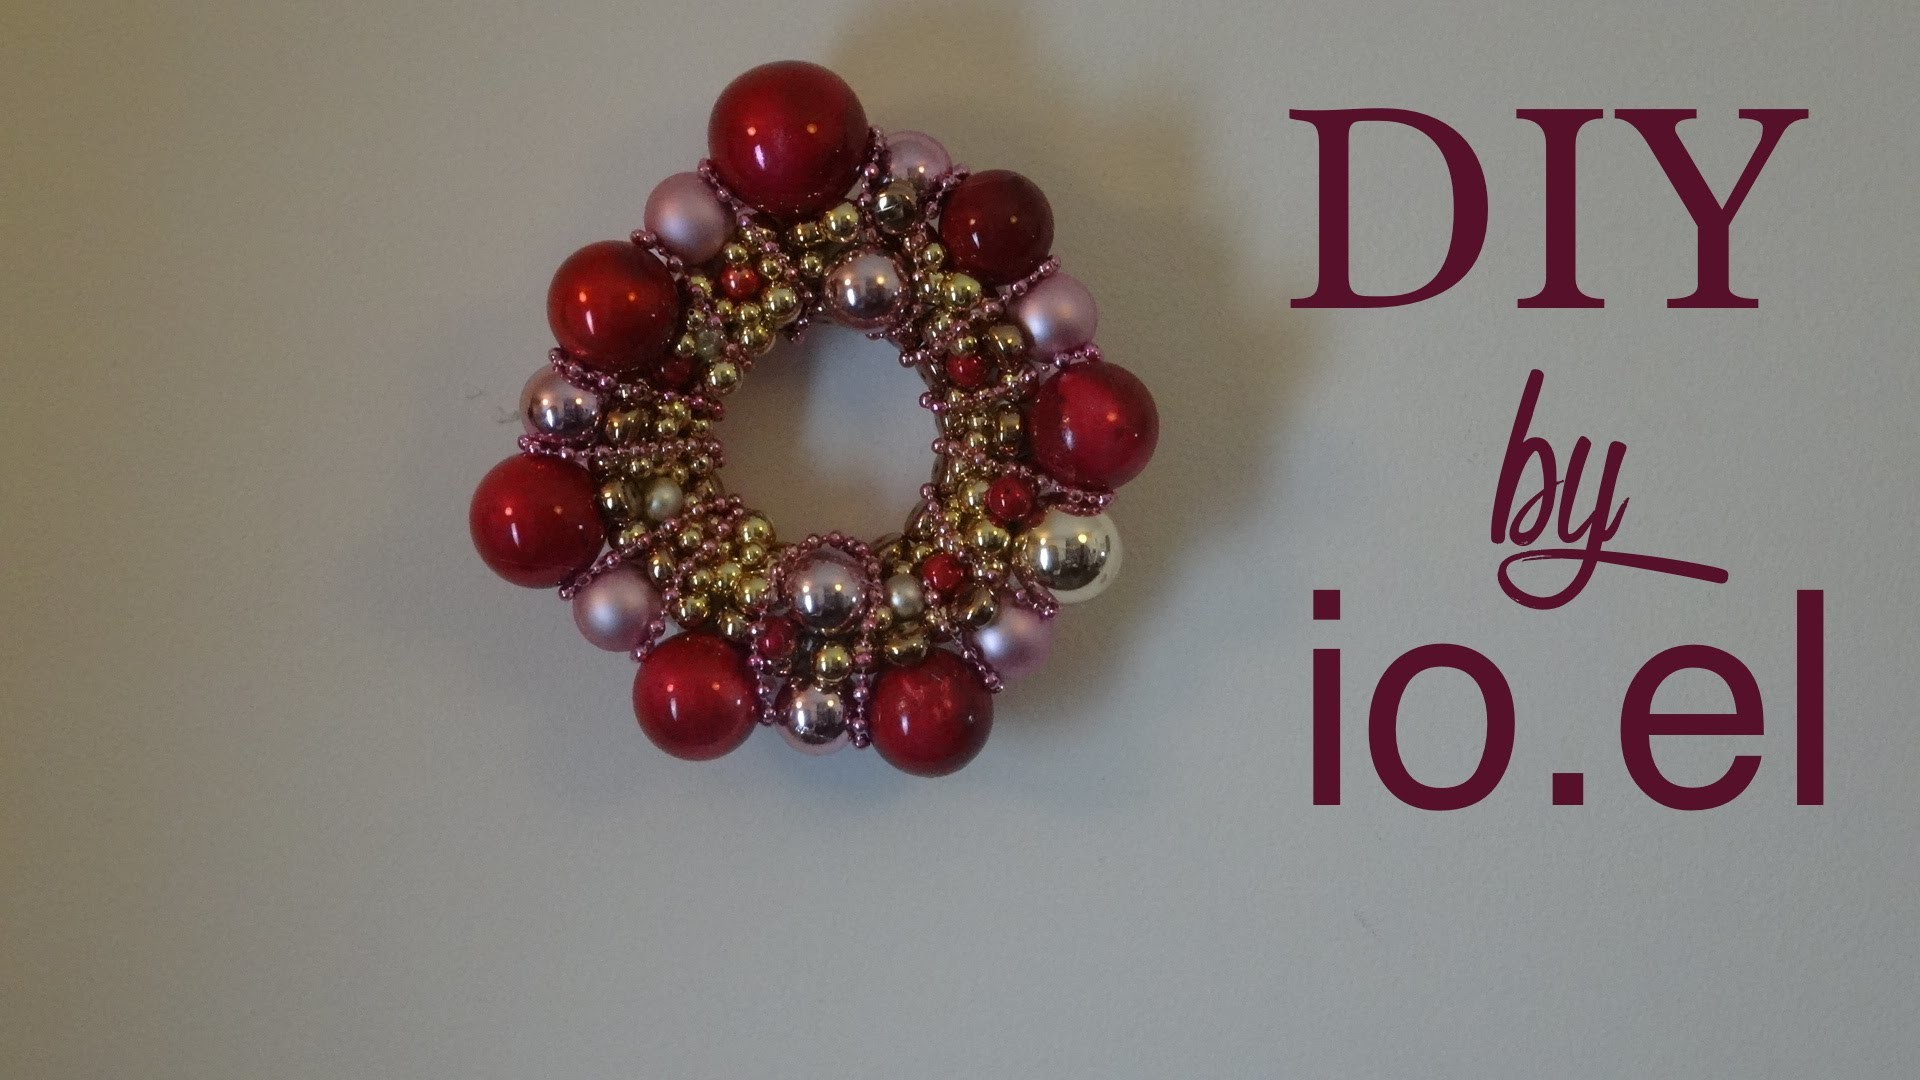 DIY. Christmas ornament - Weihnachtsdeko